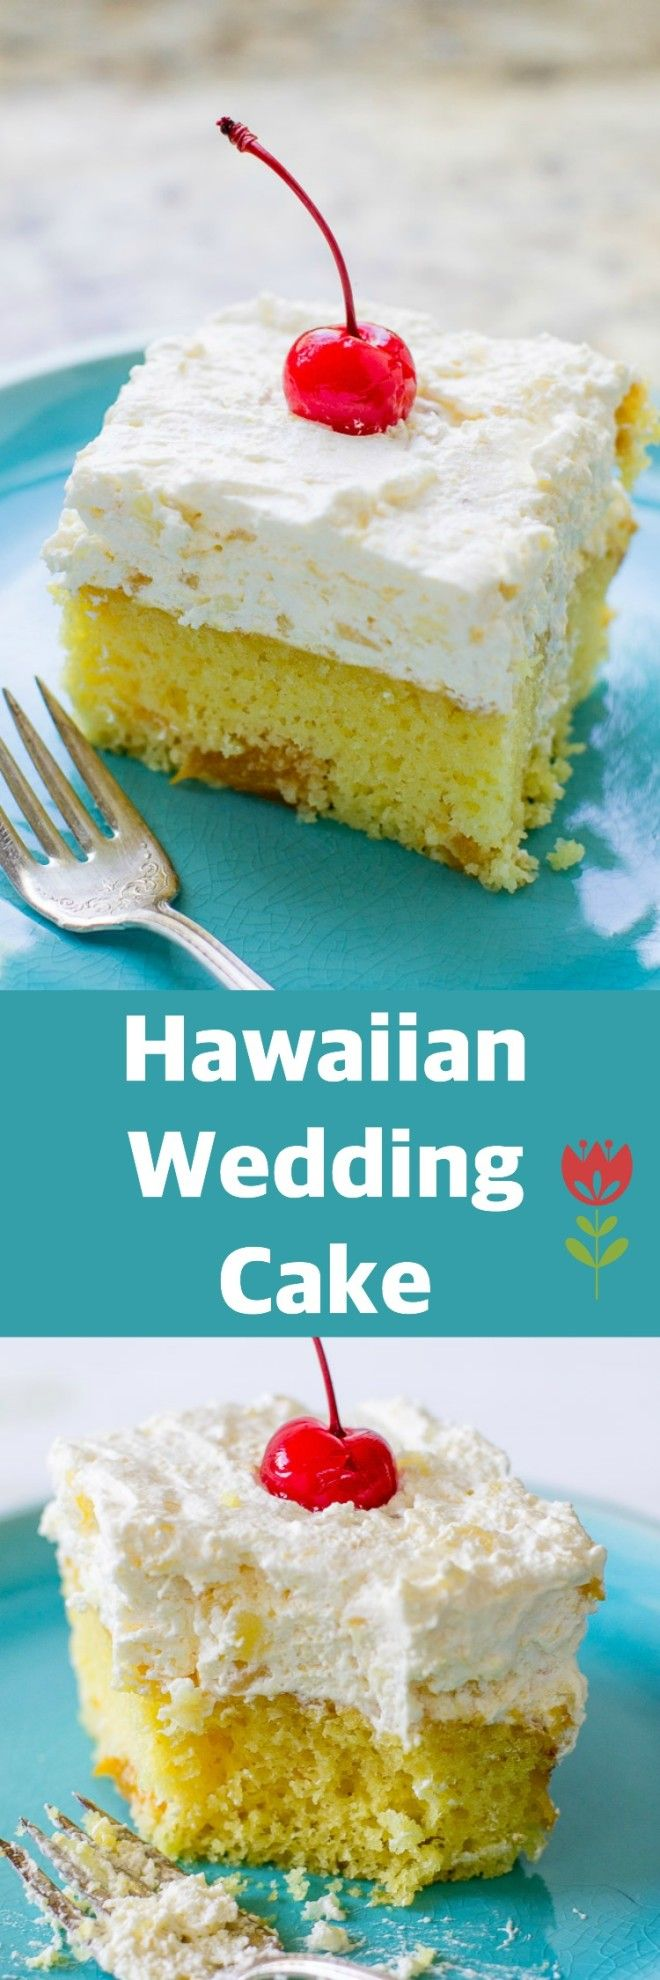 With oranges in the batter and pineapple in the frosting Hawaiian